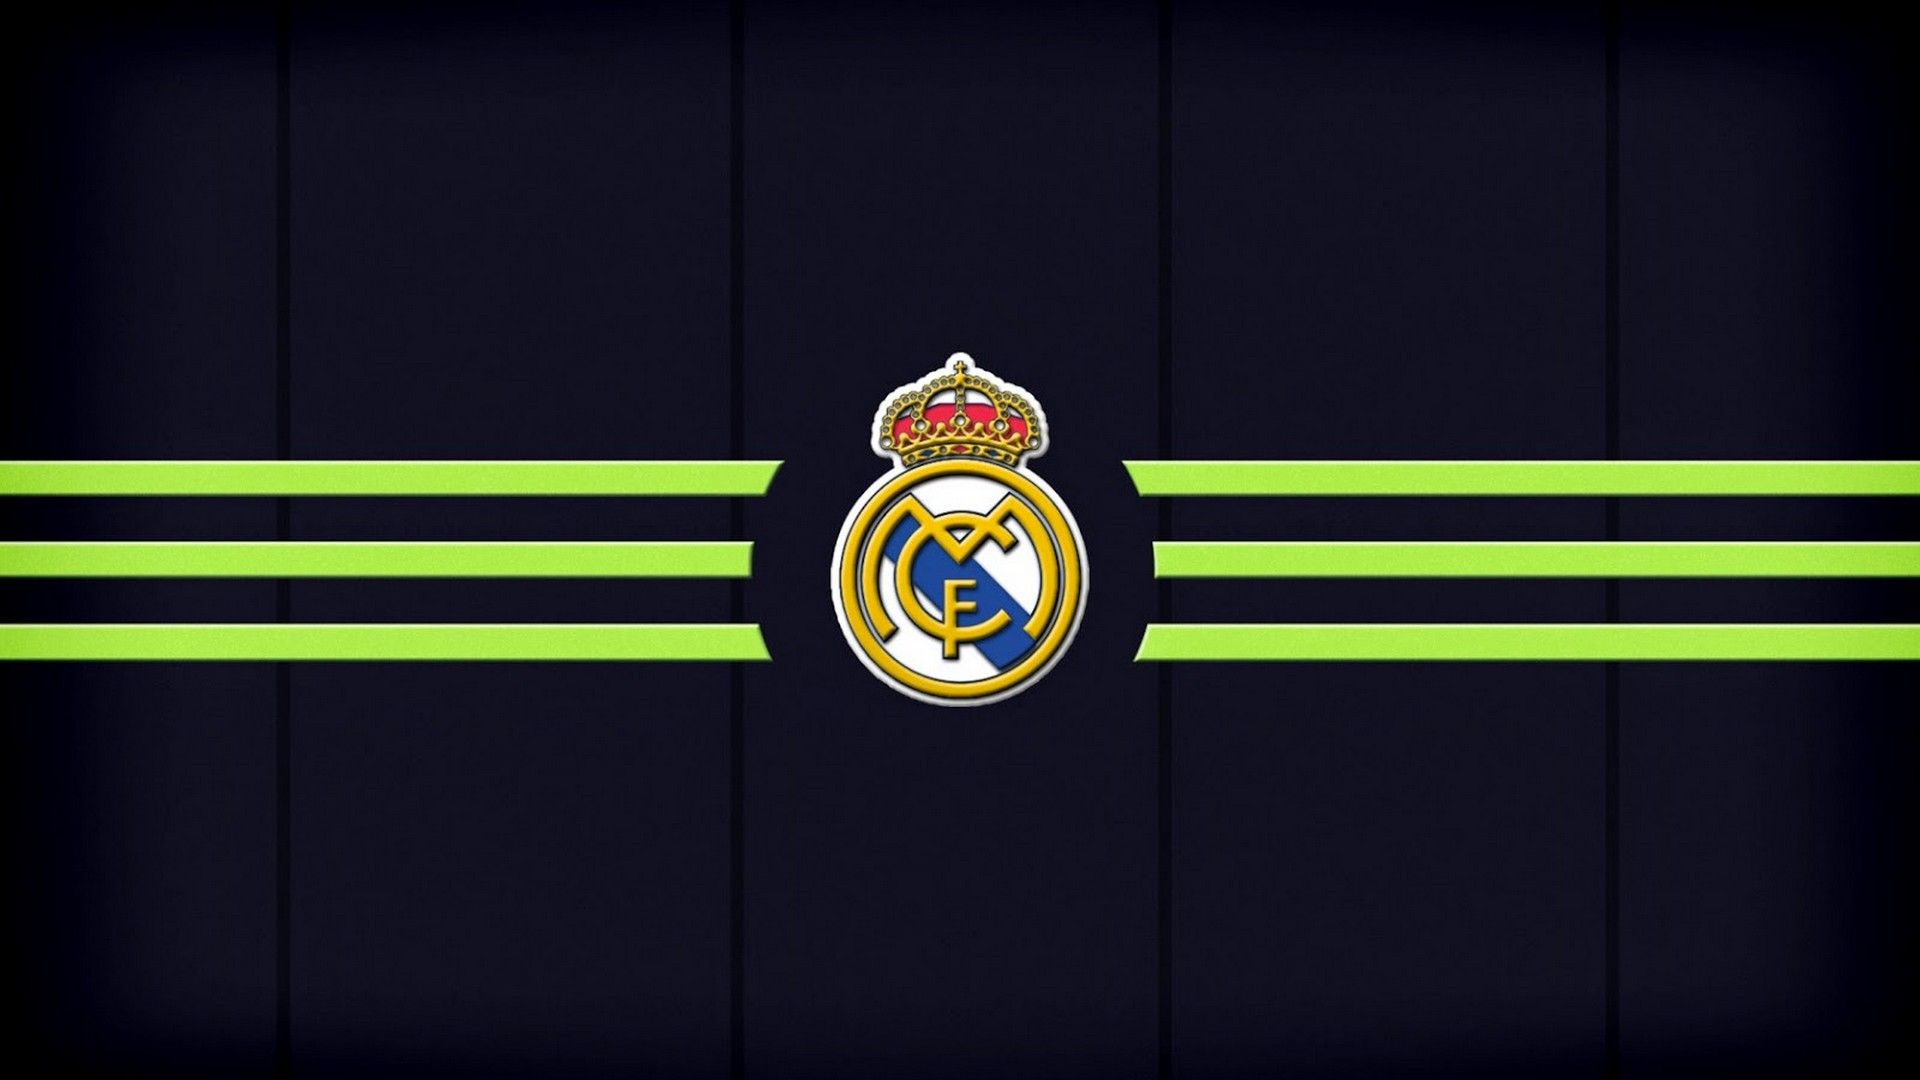 Real Madrid Cf For Pc Wallpaper Best Wallpaper Hd Real Madrid Logo Wallpapers Real Madrid Wallpapers Real Madrid Images